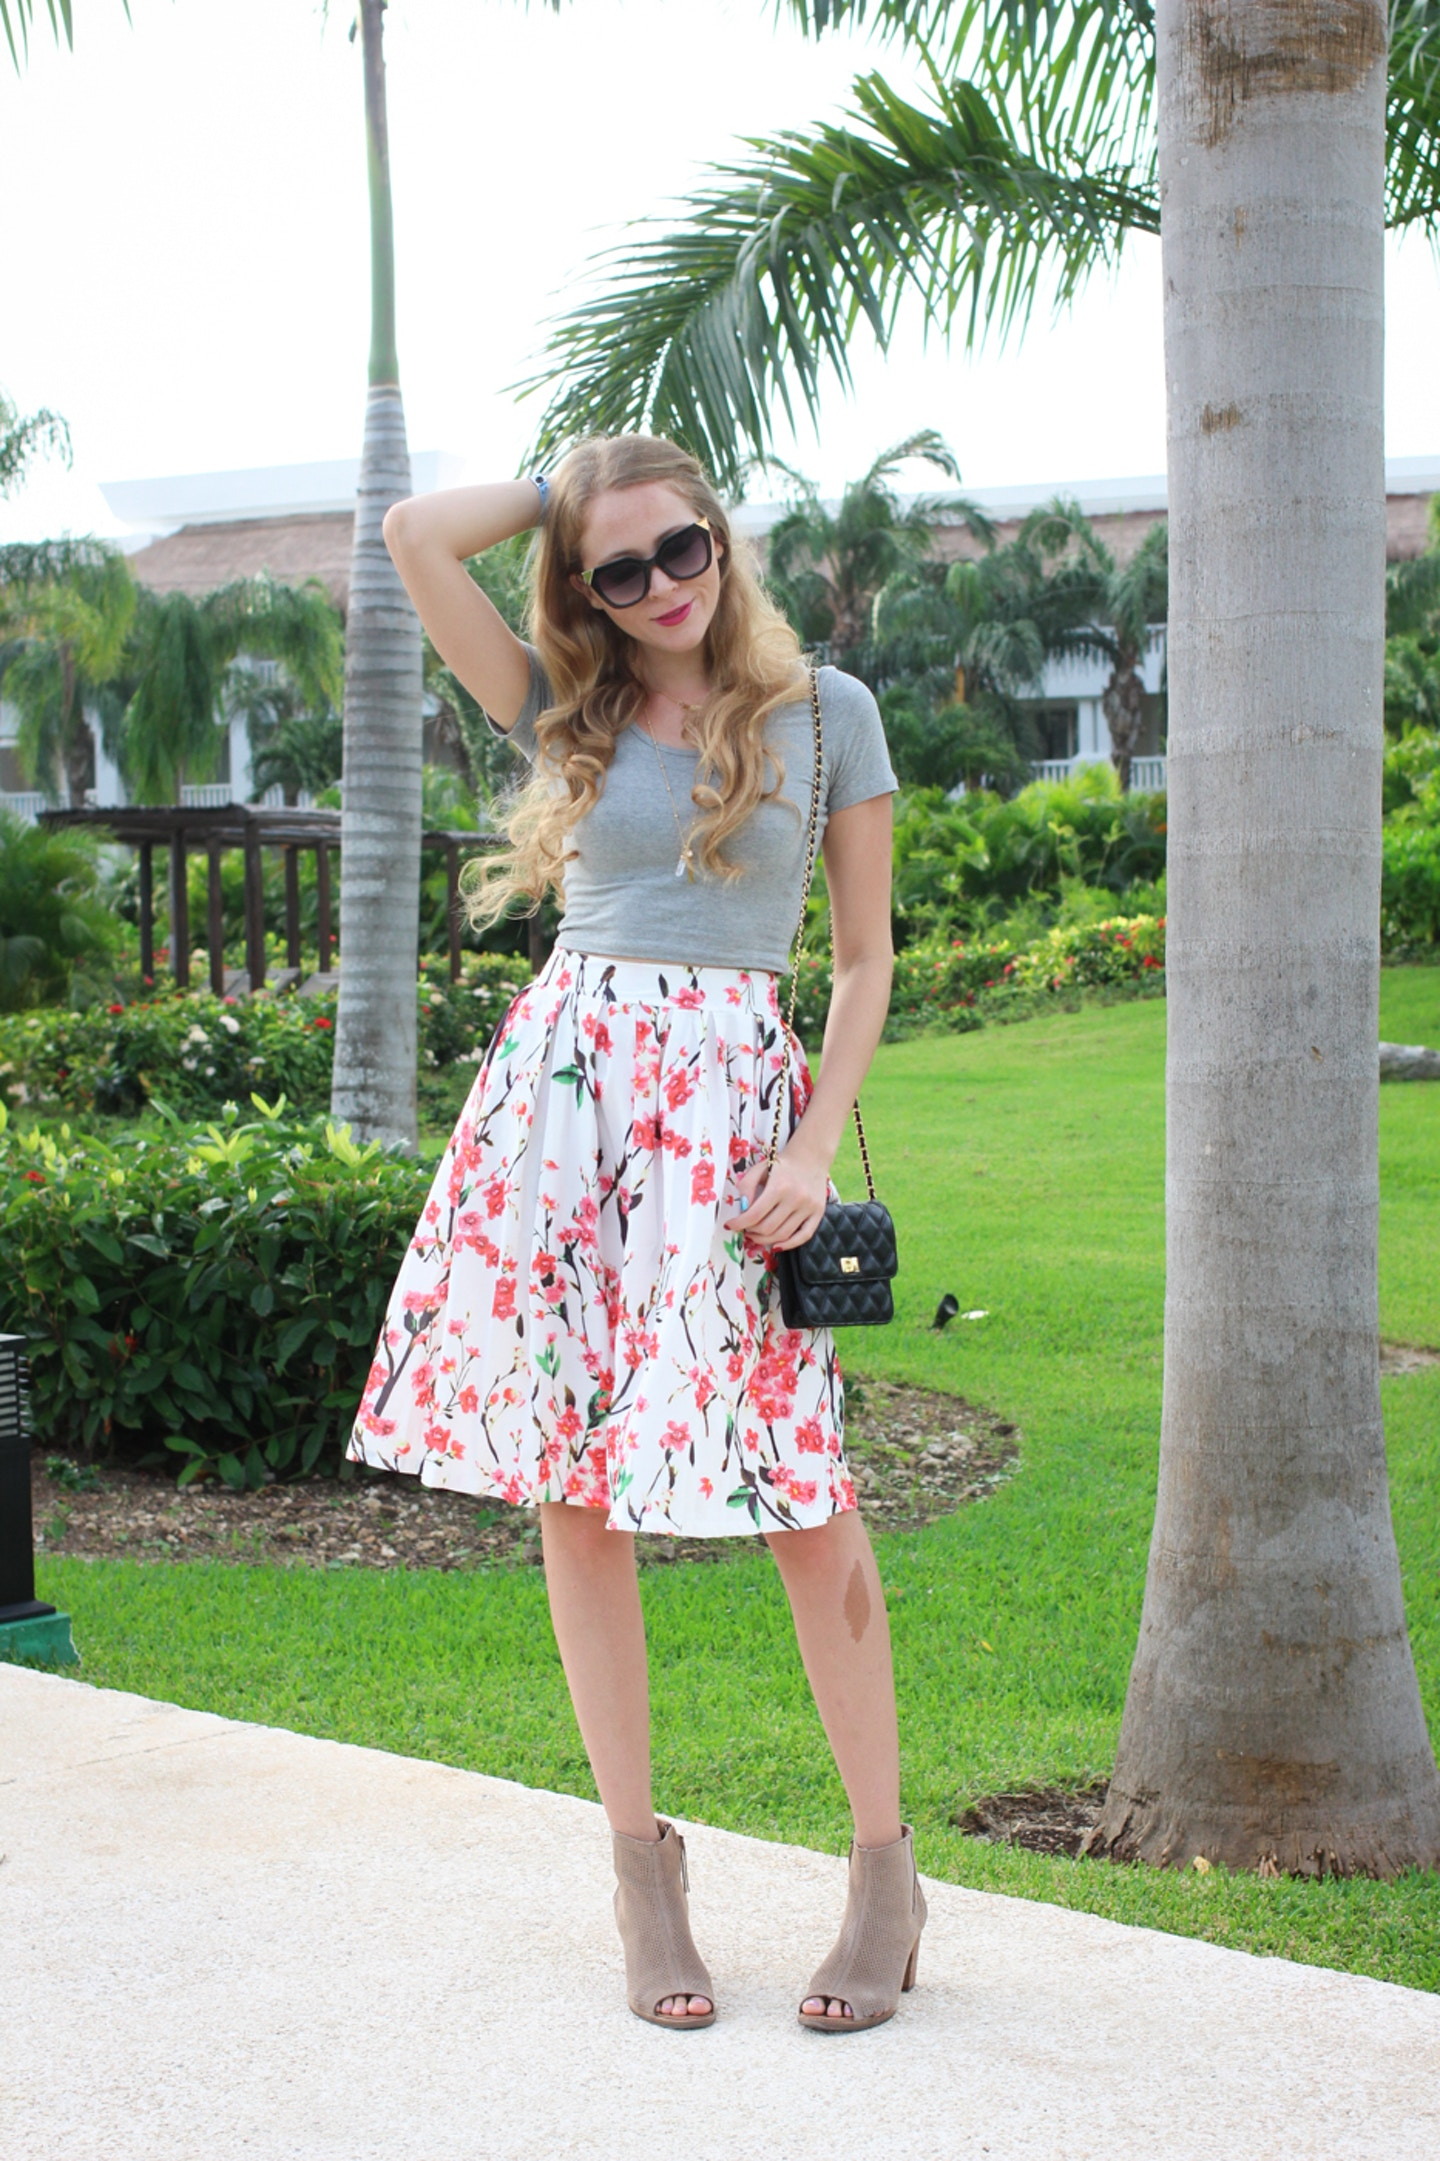 Tips for wearing printed midi skirts